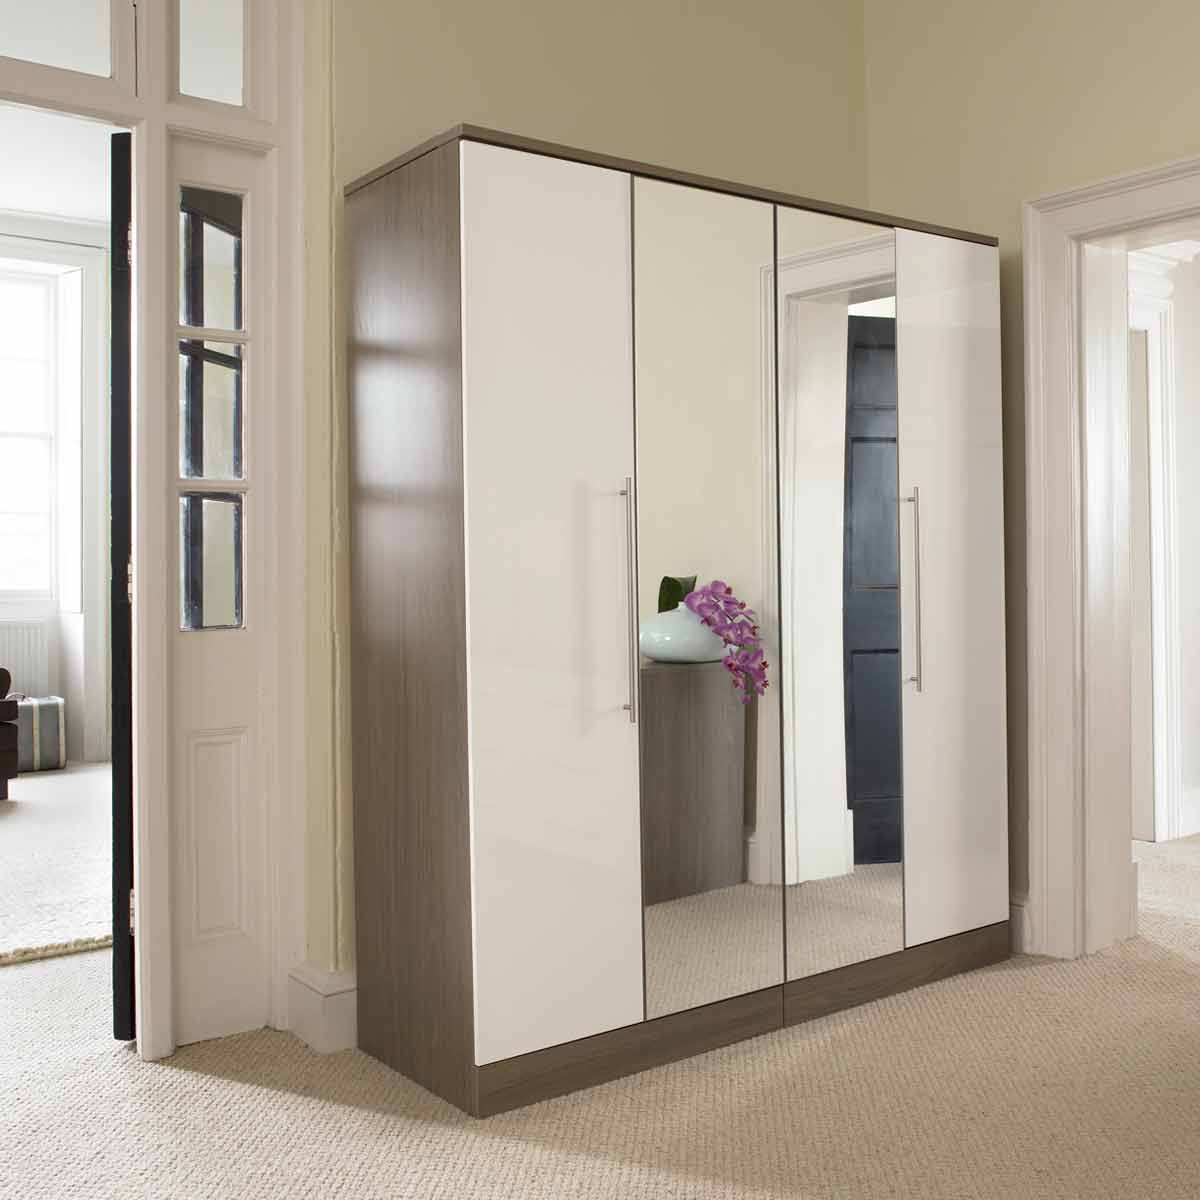 mirrored closet doors photo - 3